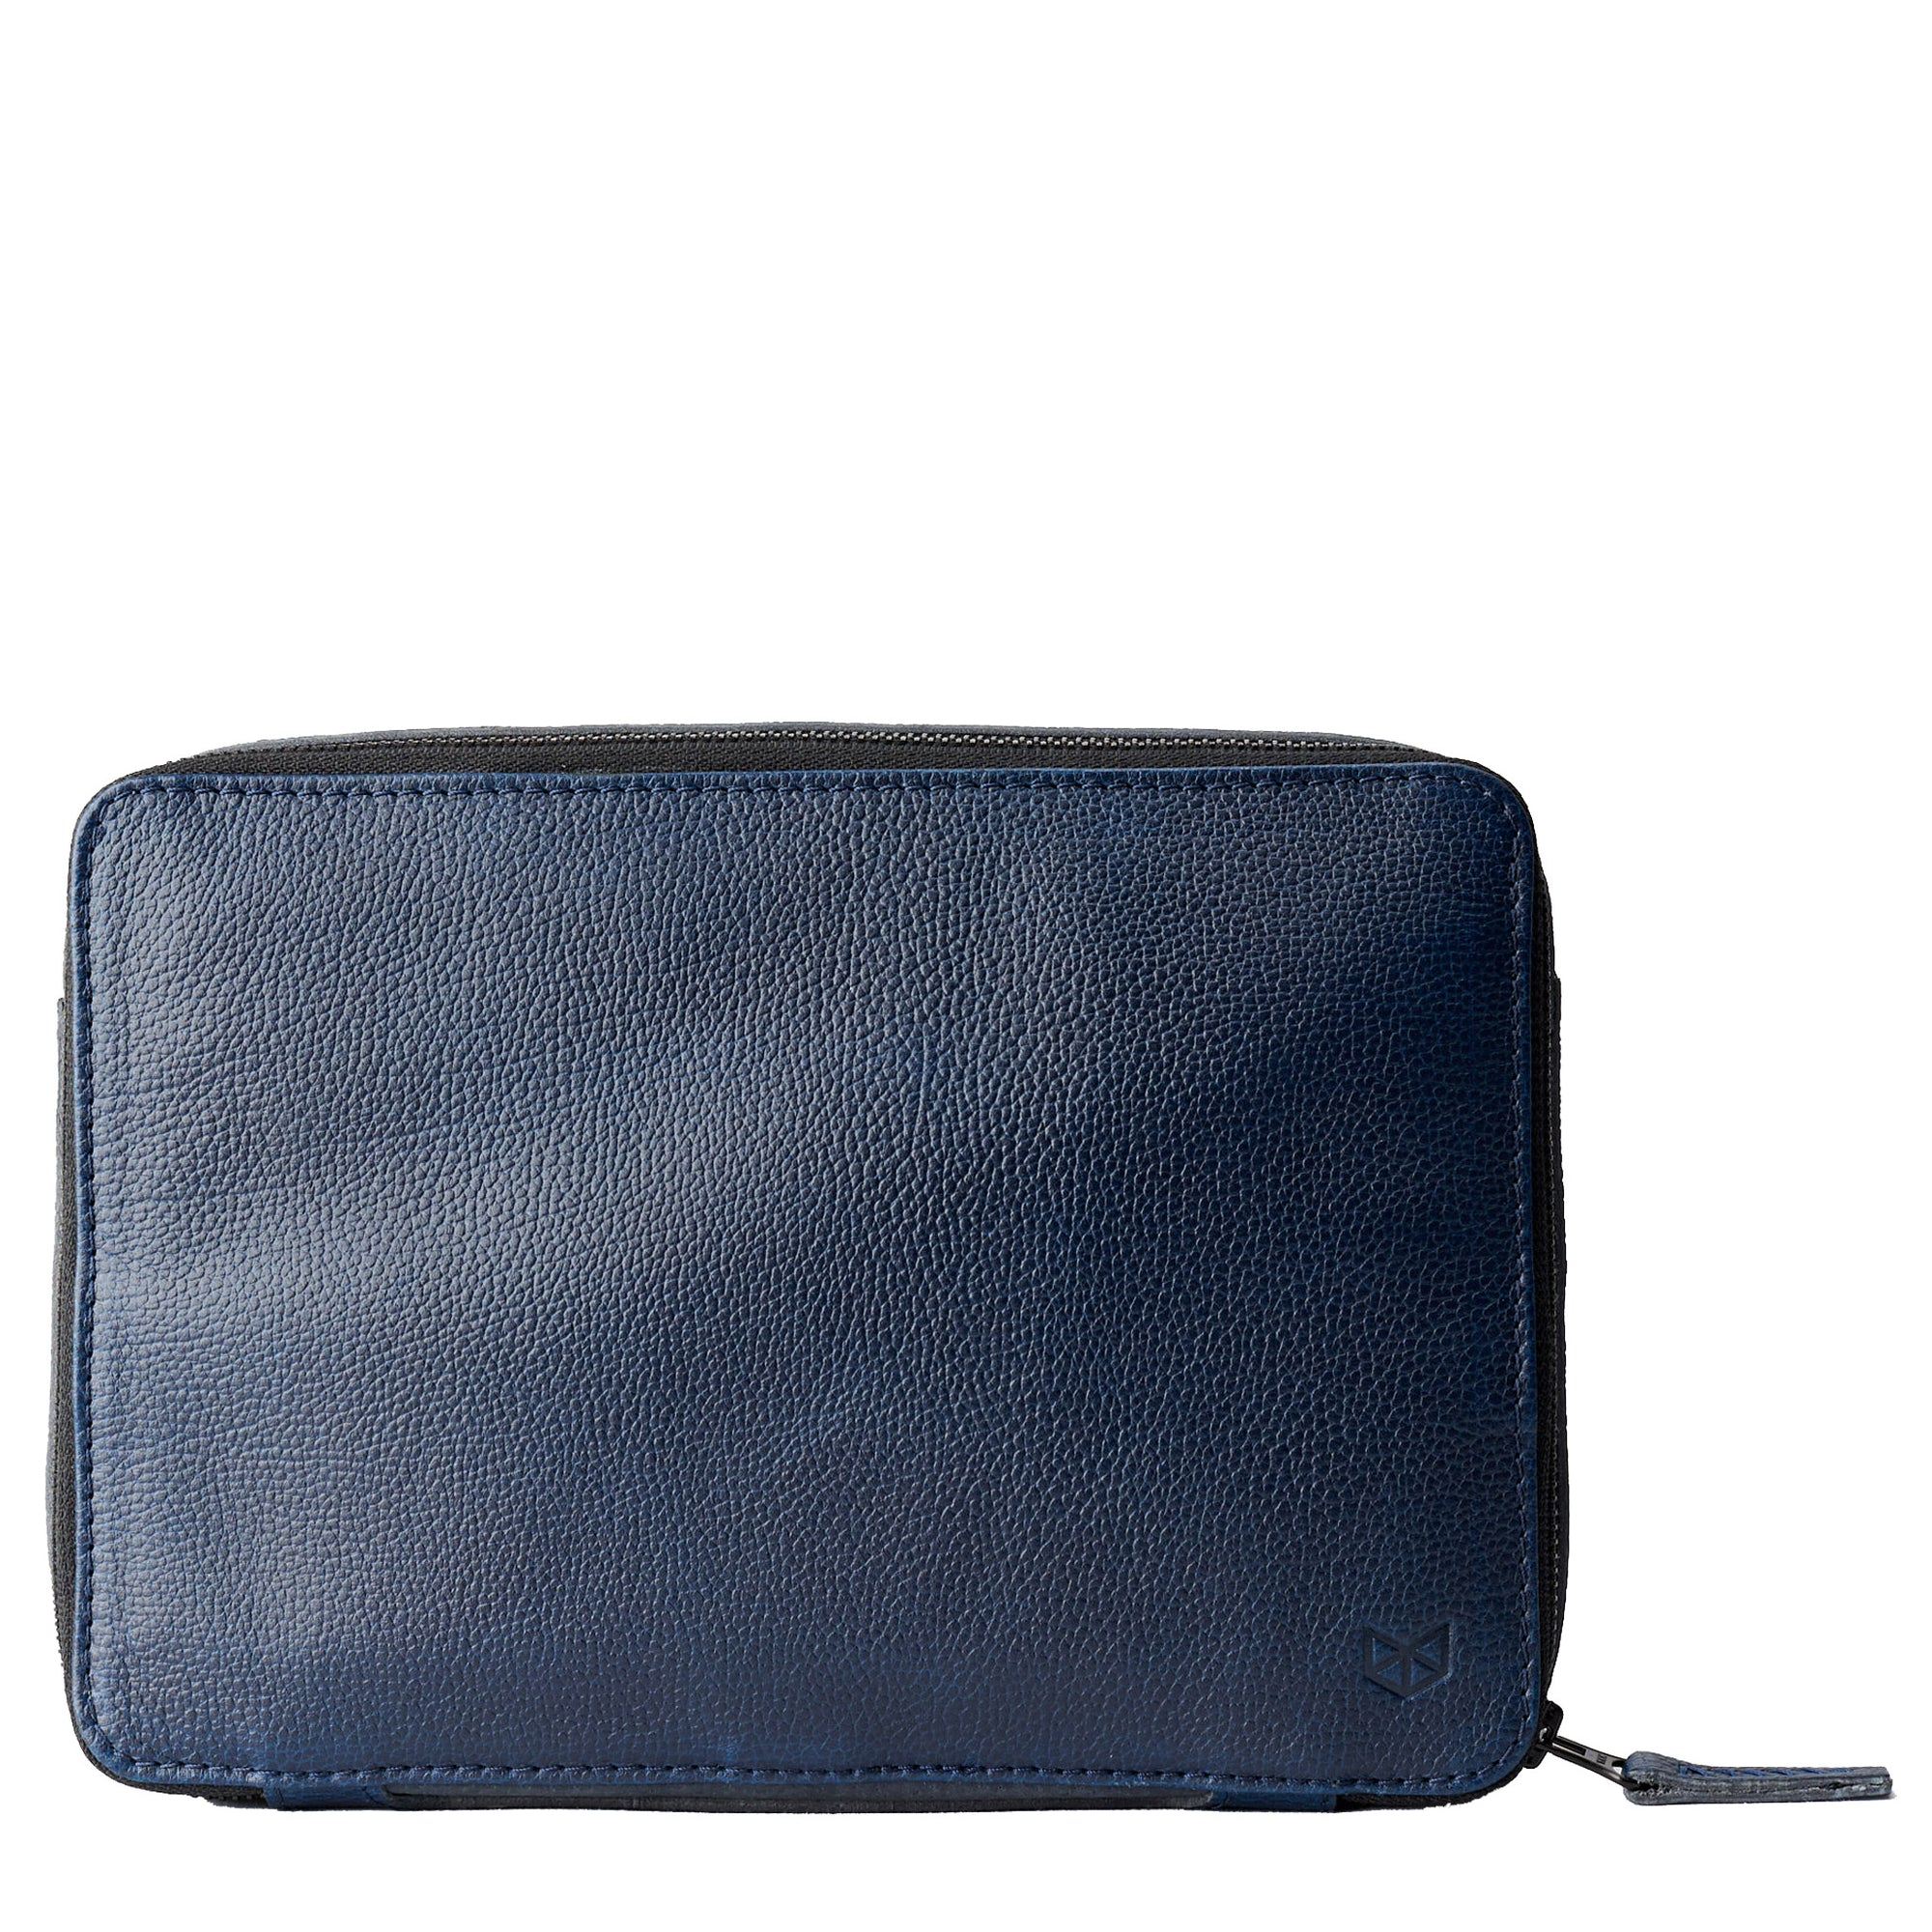 Cover. Ocean blue leather gadget bag, tech dopp kit, electronic organizer. Fits iPad Pro with Apple pencil by Capra Leather